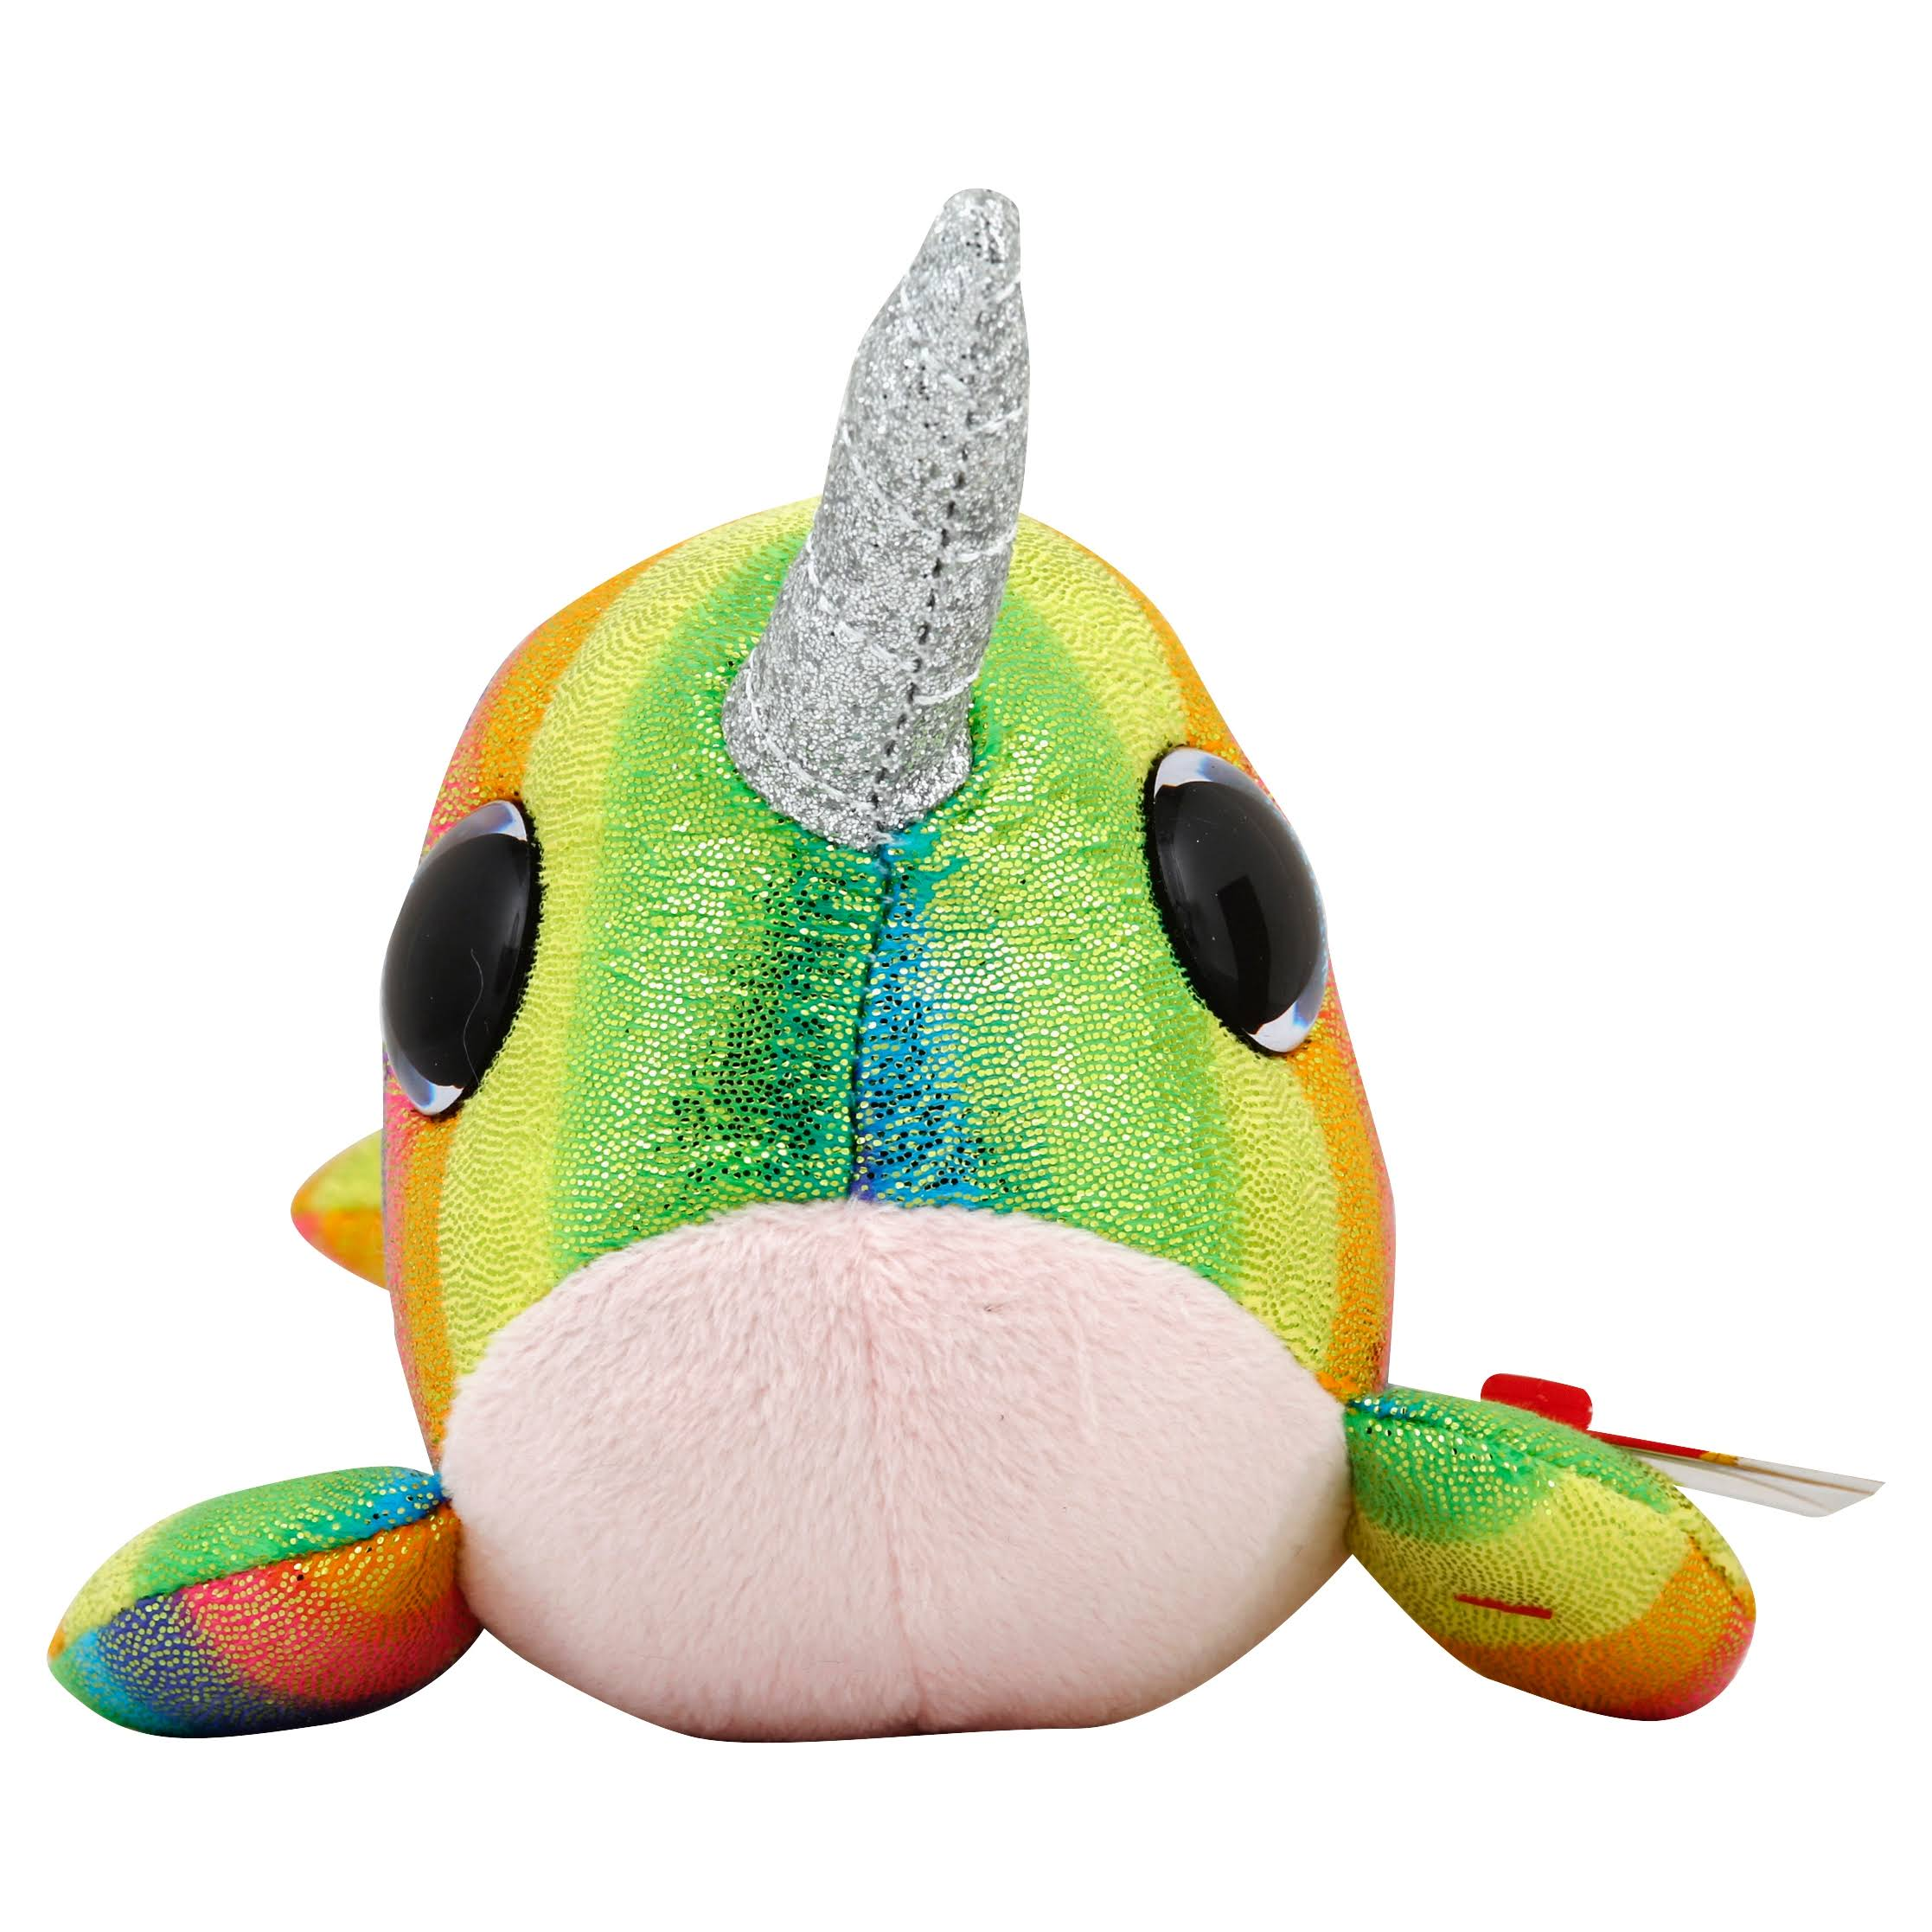 Ty Beanie Boos Nori the Narwhal Plush - 6""